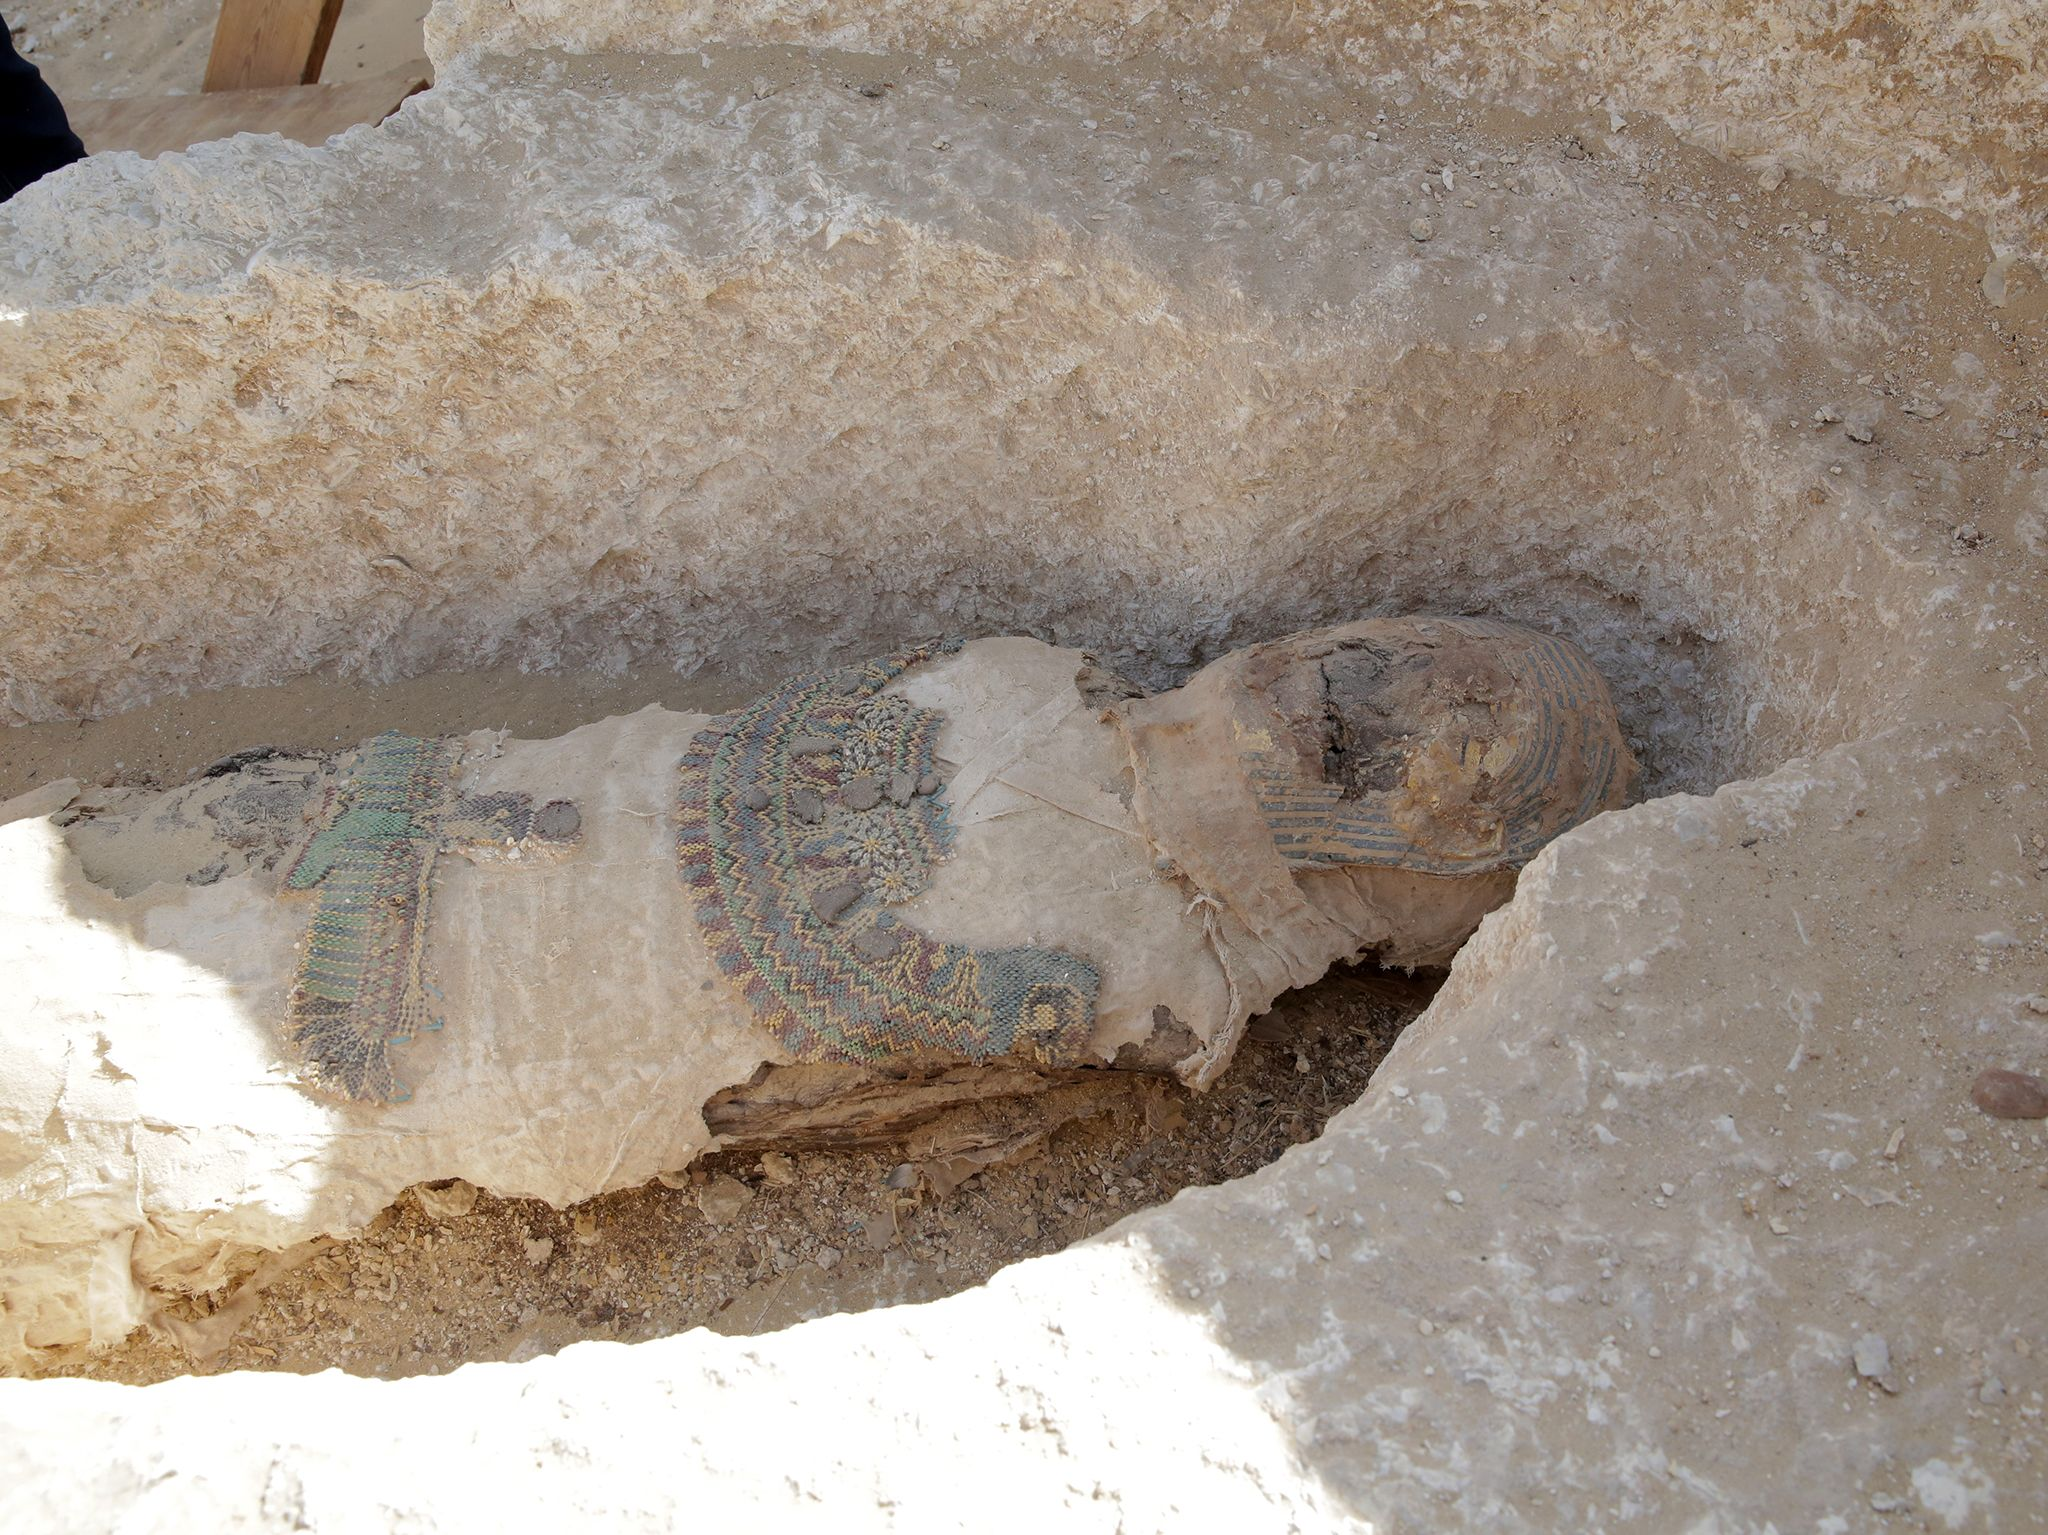 Open crypt with remains of a mummy still inside at the archaeological site of Tuna al Gabal.... [Foto del giorno - aprile 2019]